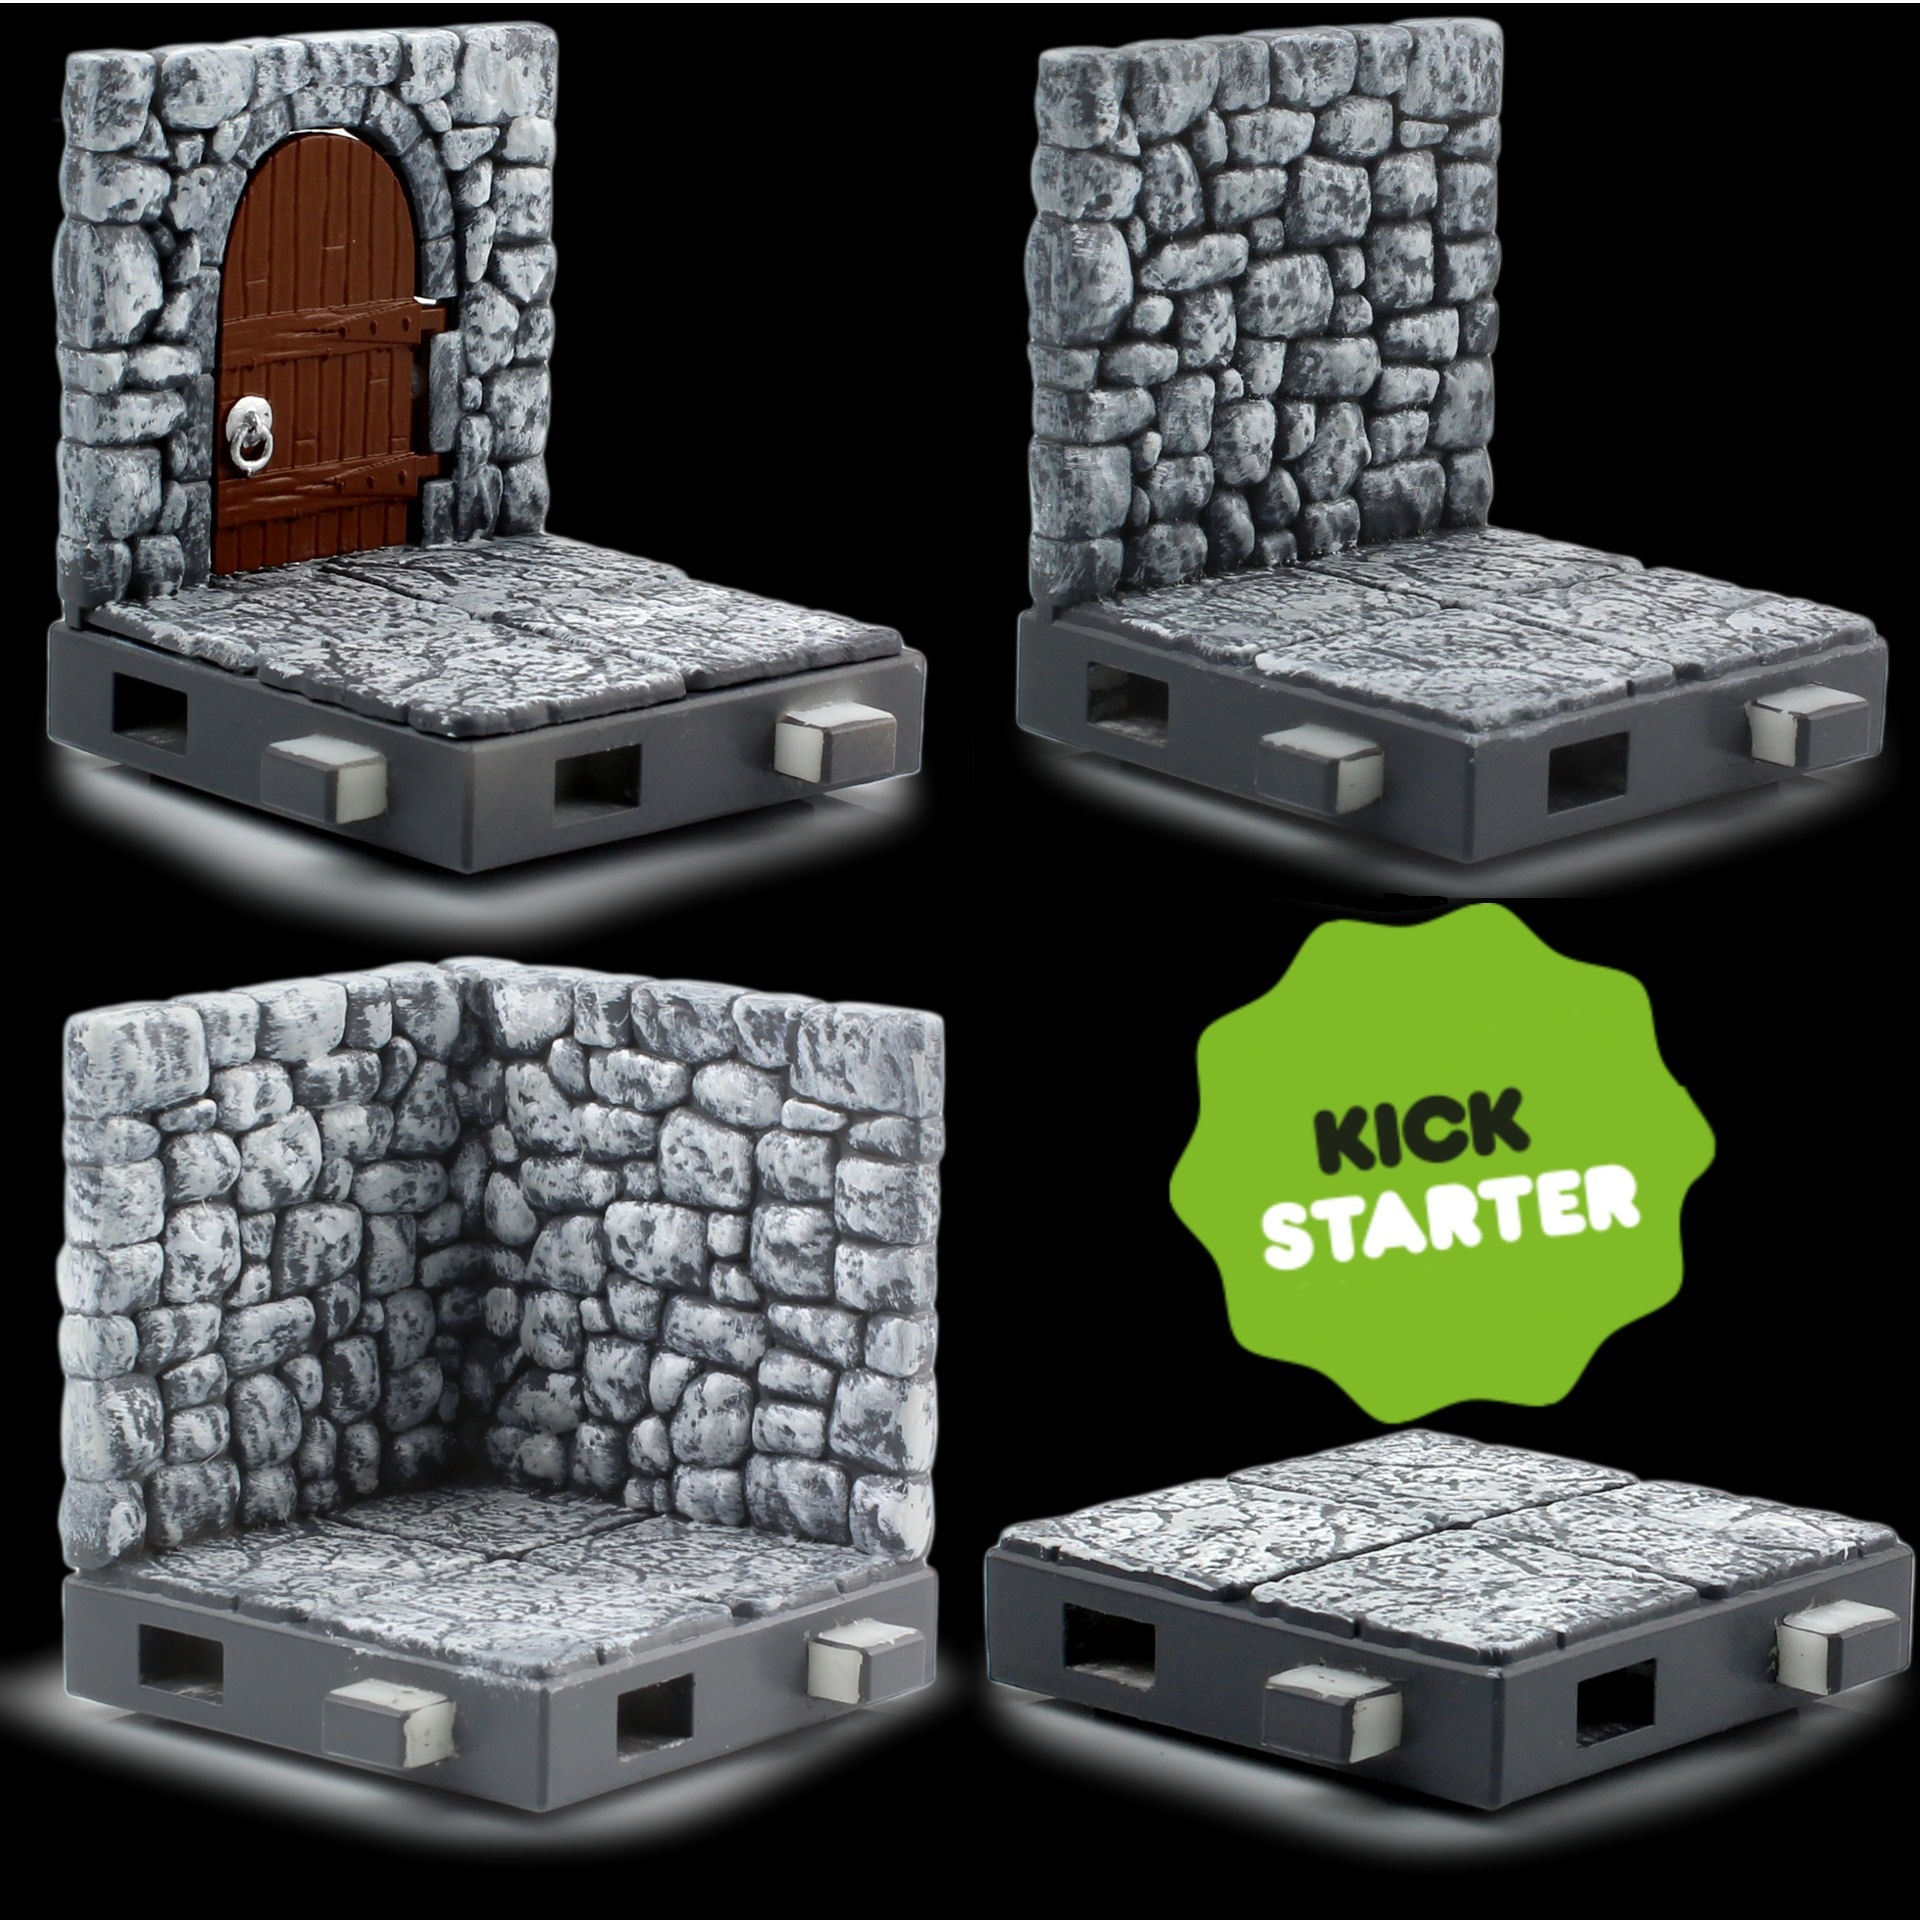 Zfigs Dungeon Tiles,' Toy Vault's Affordable Tabletop Gaming Terrain